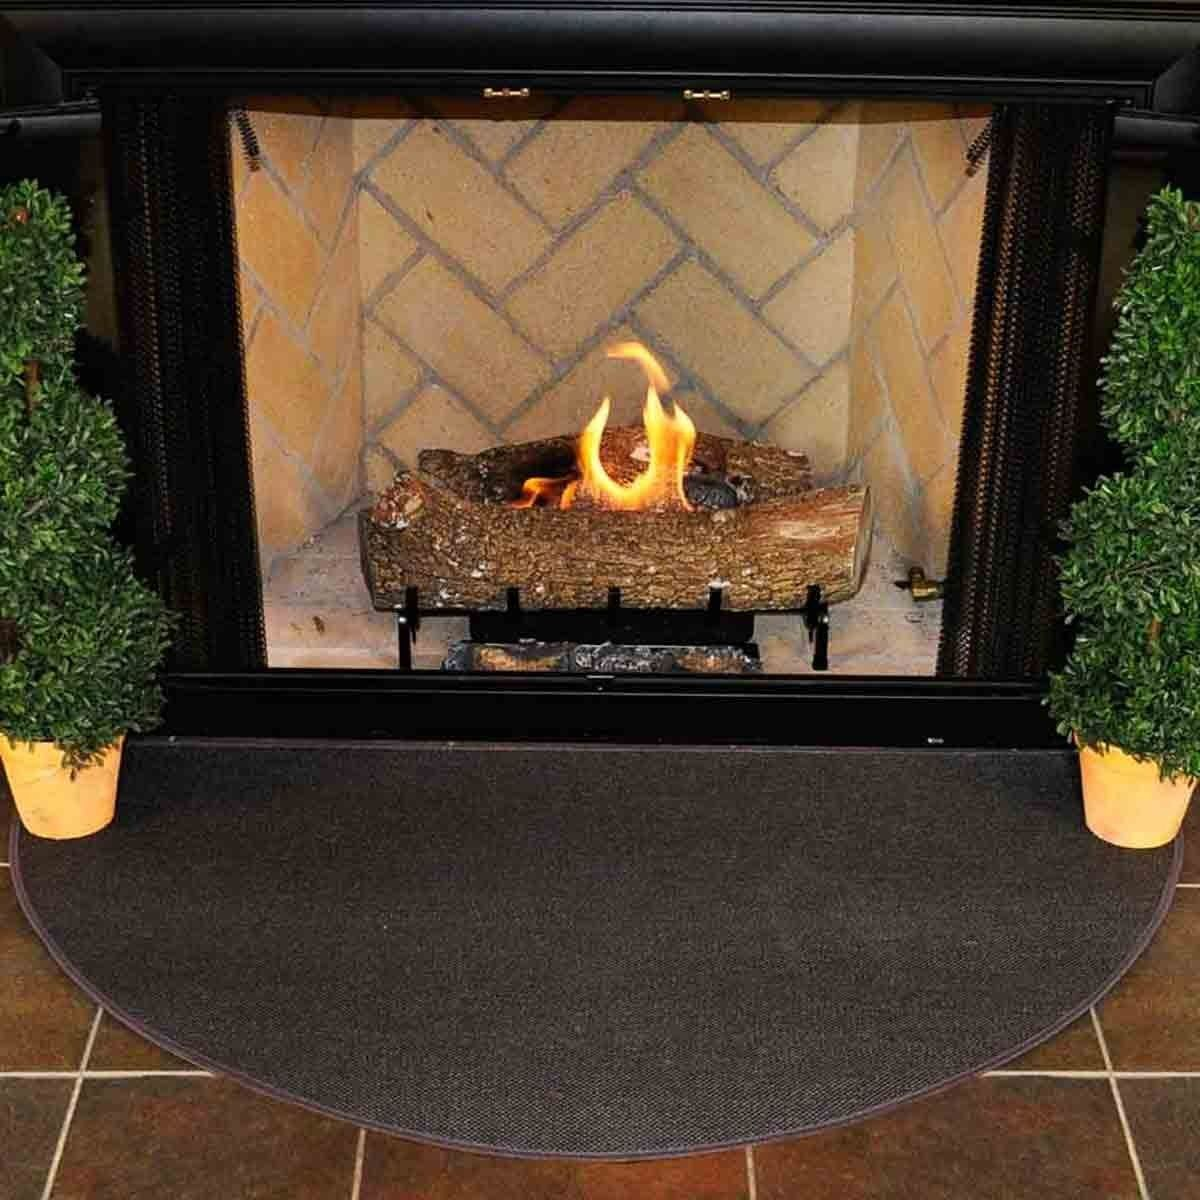 4 Half Round Charcoal Guardian Fireplace Rug 4 Half Round Charcoal Guardian Rug Browse Our Array Of Fire Resistant Fire Fireplace Rugs Fireplace Hearth Rug